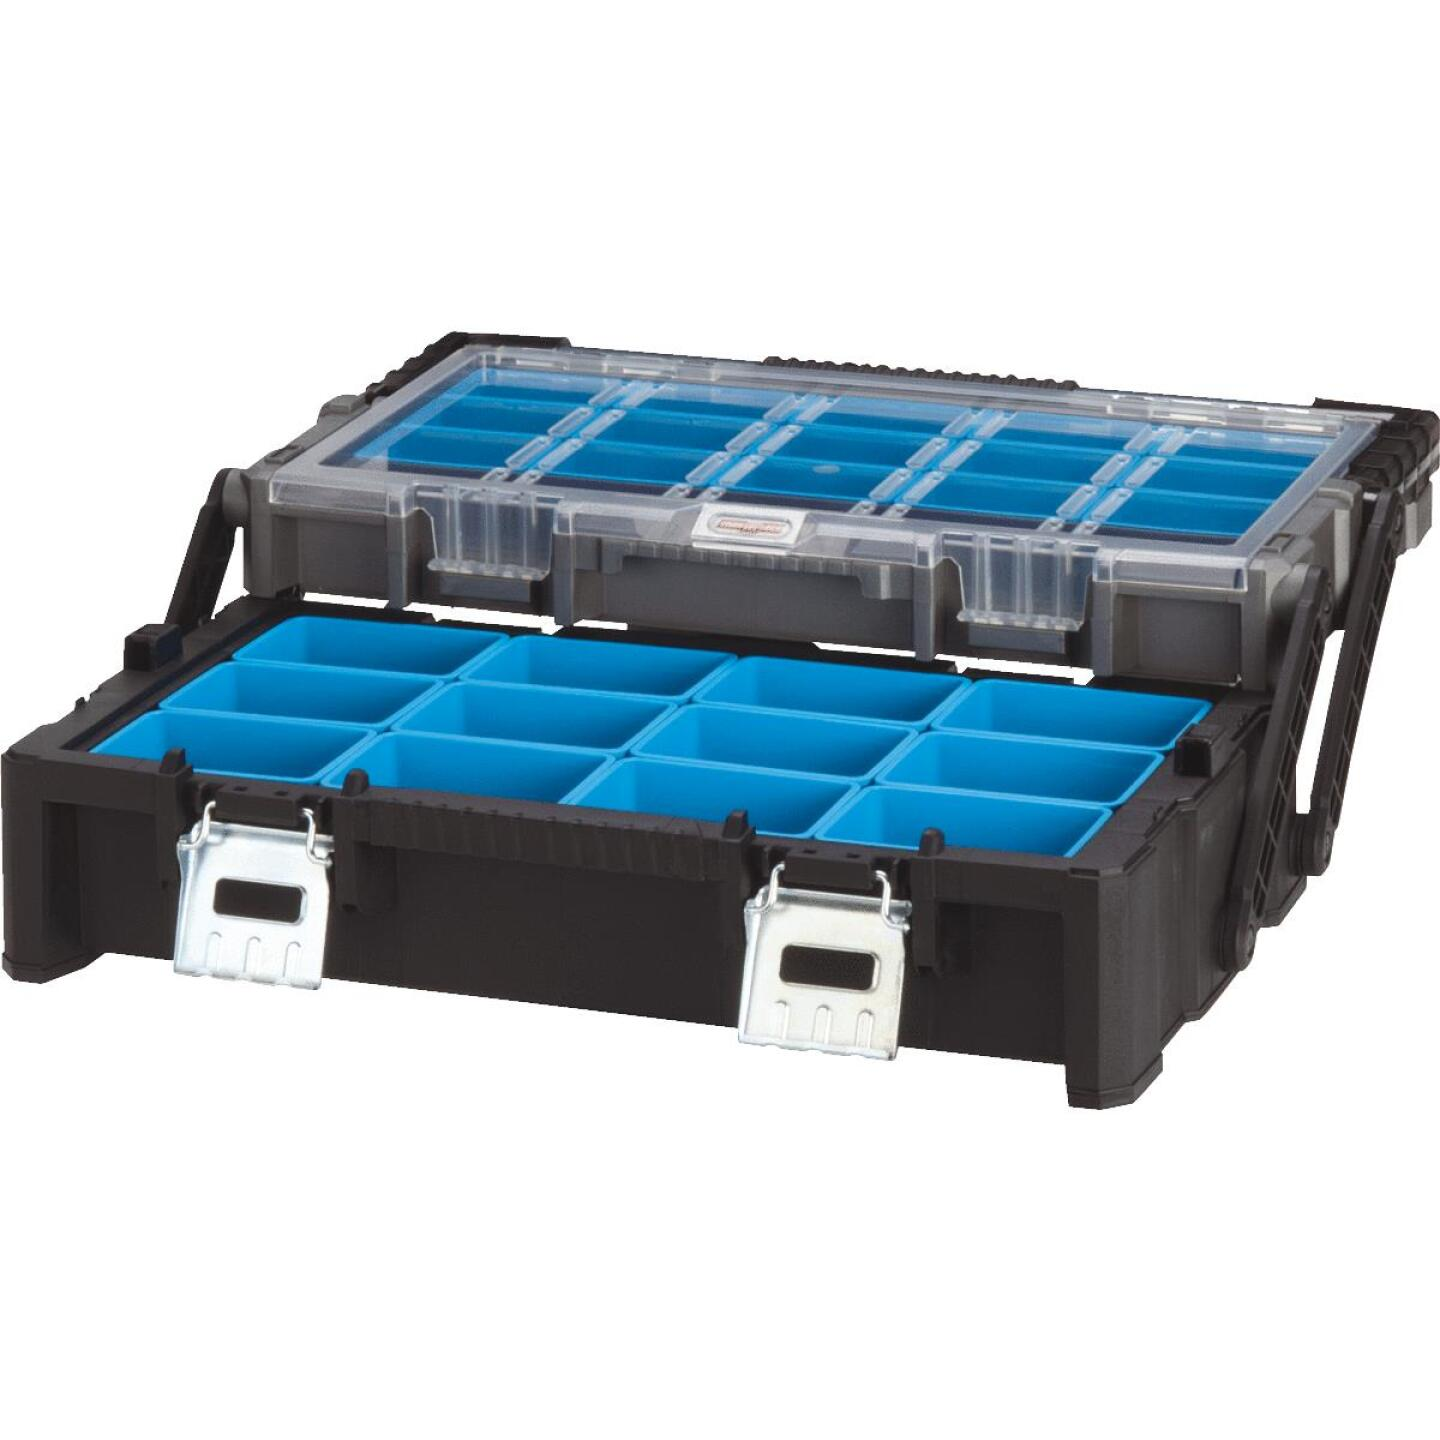 Channellock 22.5 In. Cantilever Parts Organizer Storage Box Image 10